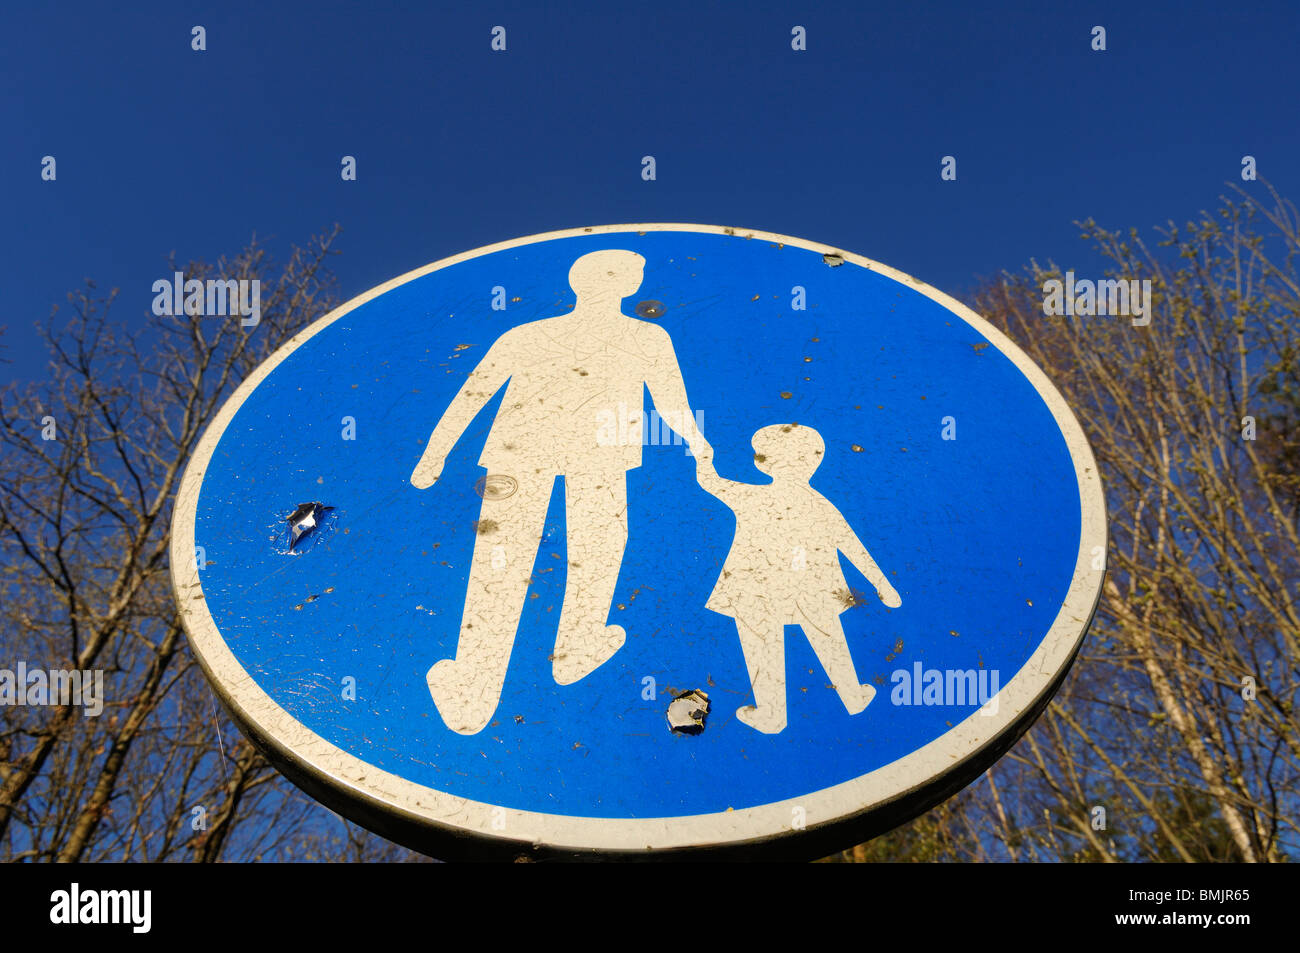 Pedestrian crossing sign, close-up, low angle view - Stock Image